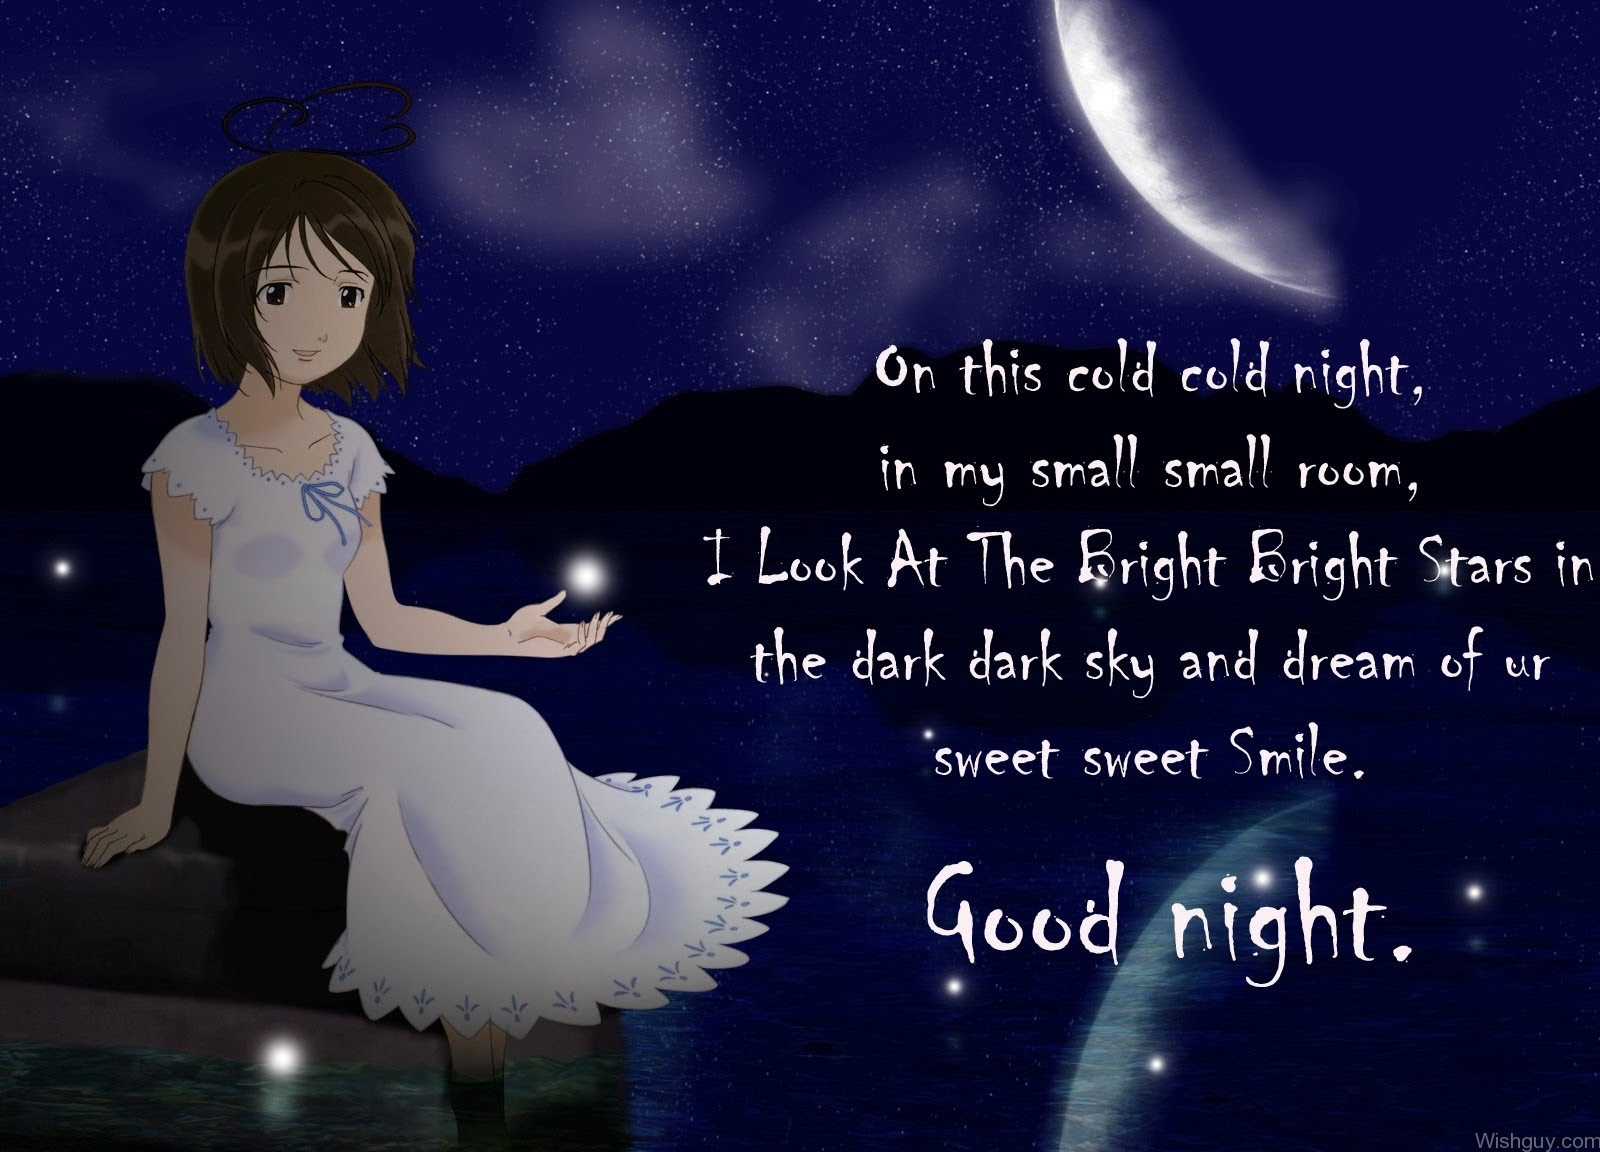 Good Night My Sweet Dear Friend Wishes Greetings Pictures Wish Guy